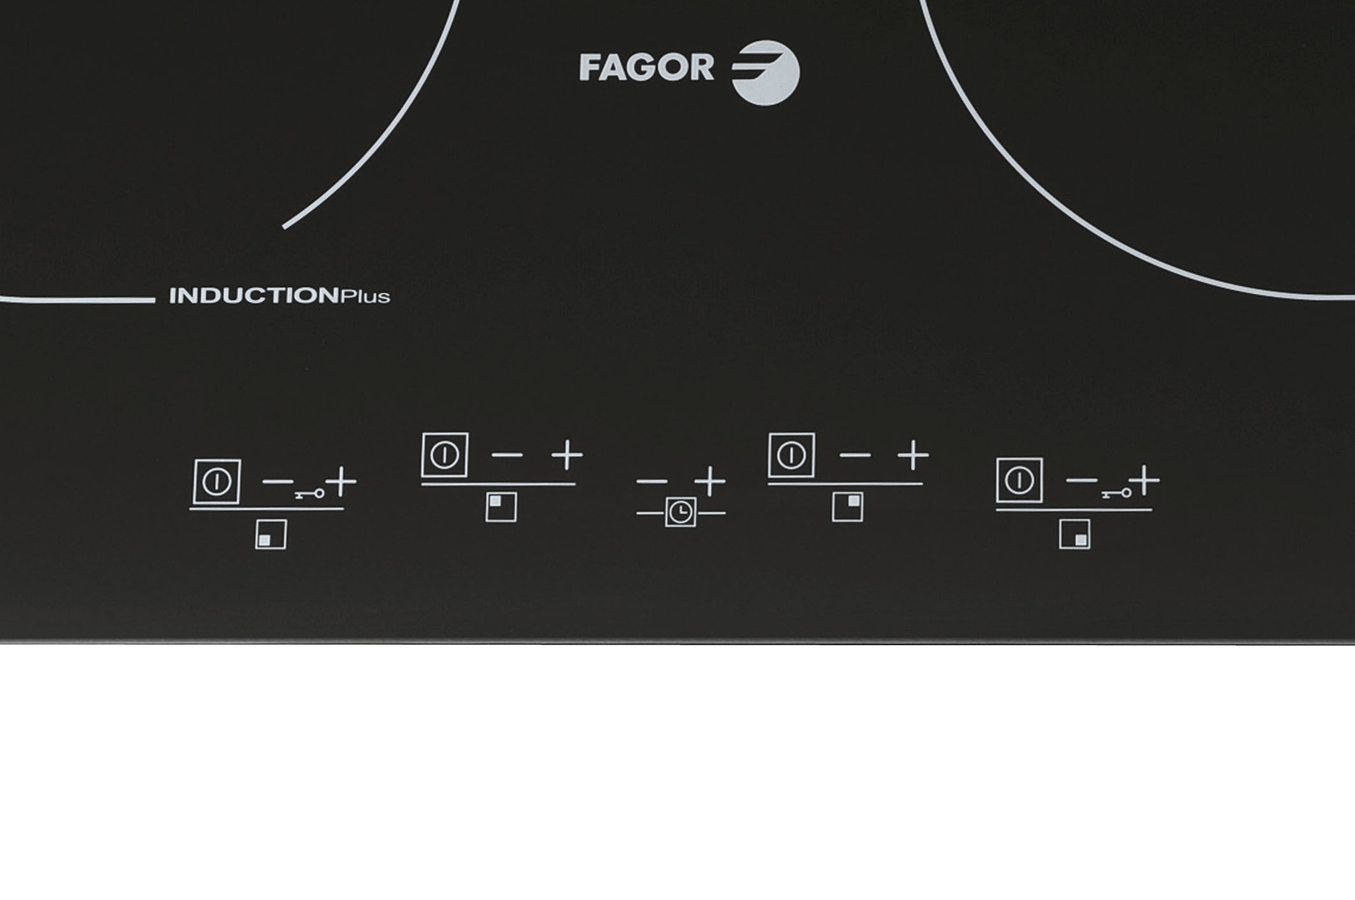 fagor innovation induction plus manual. Black Bedroom Furniture Sets. Home Design Ideas